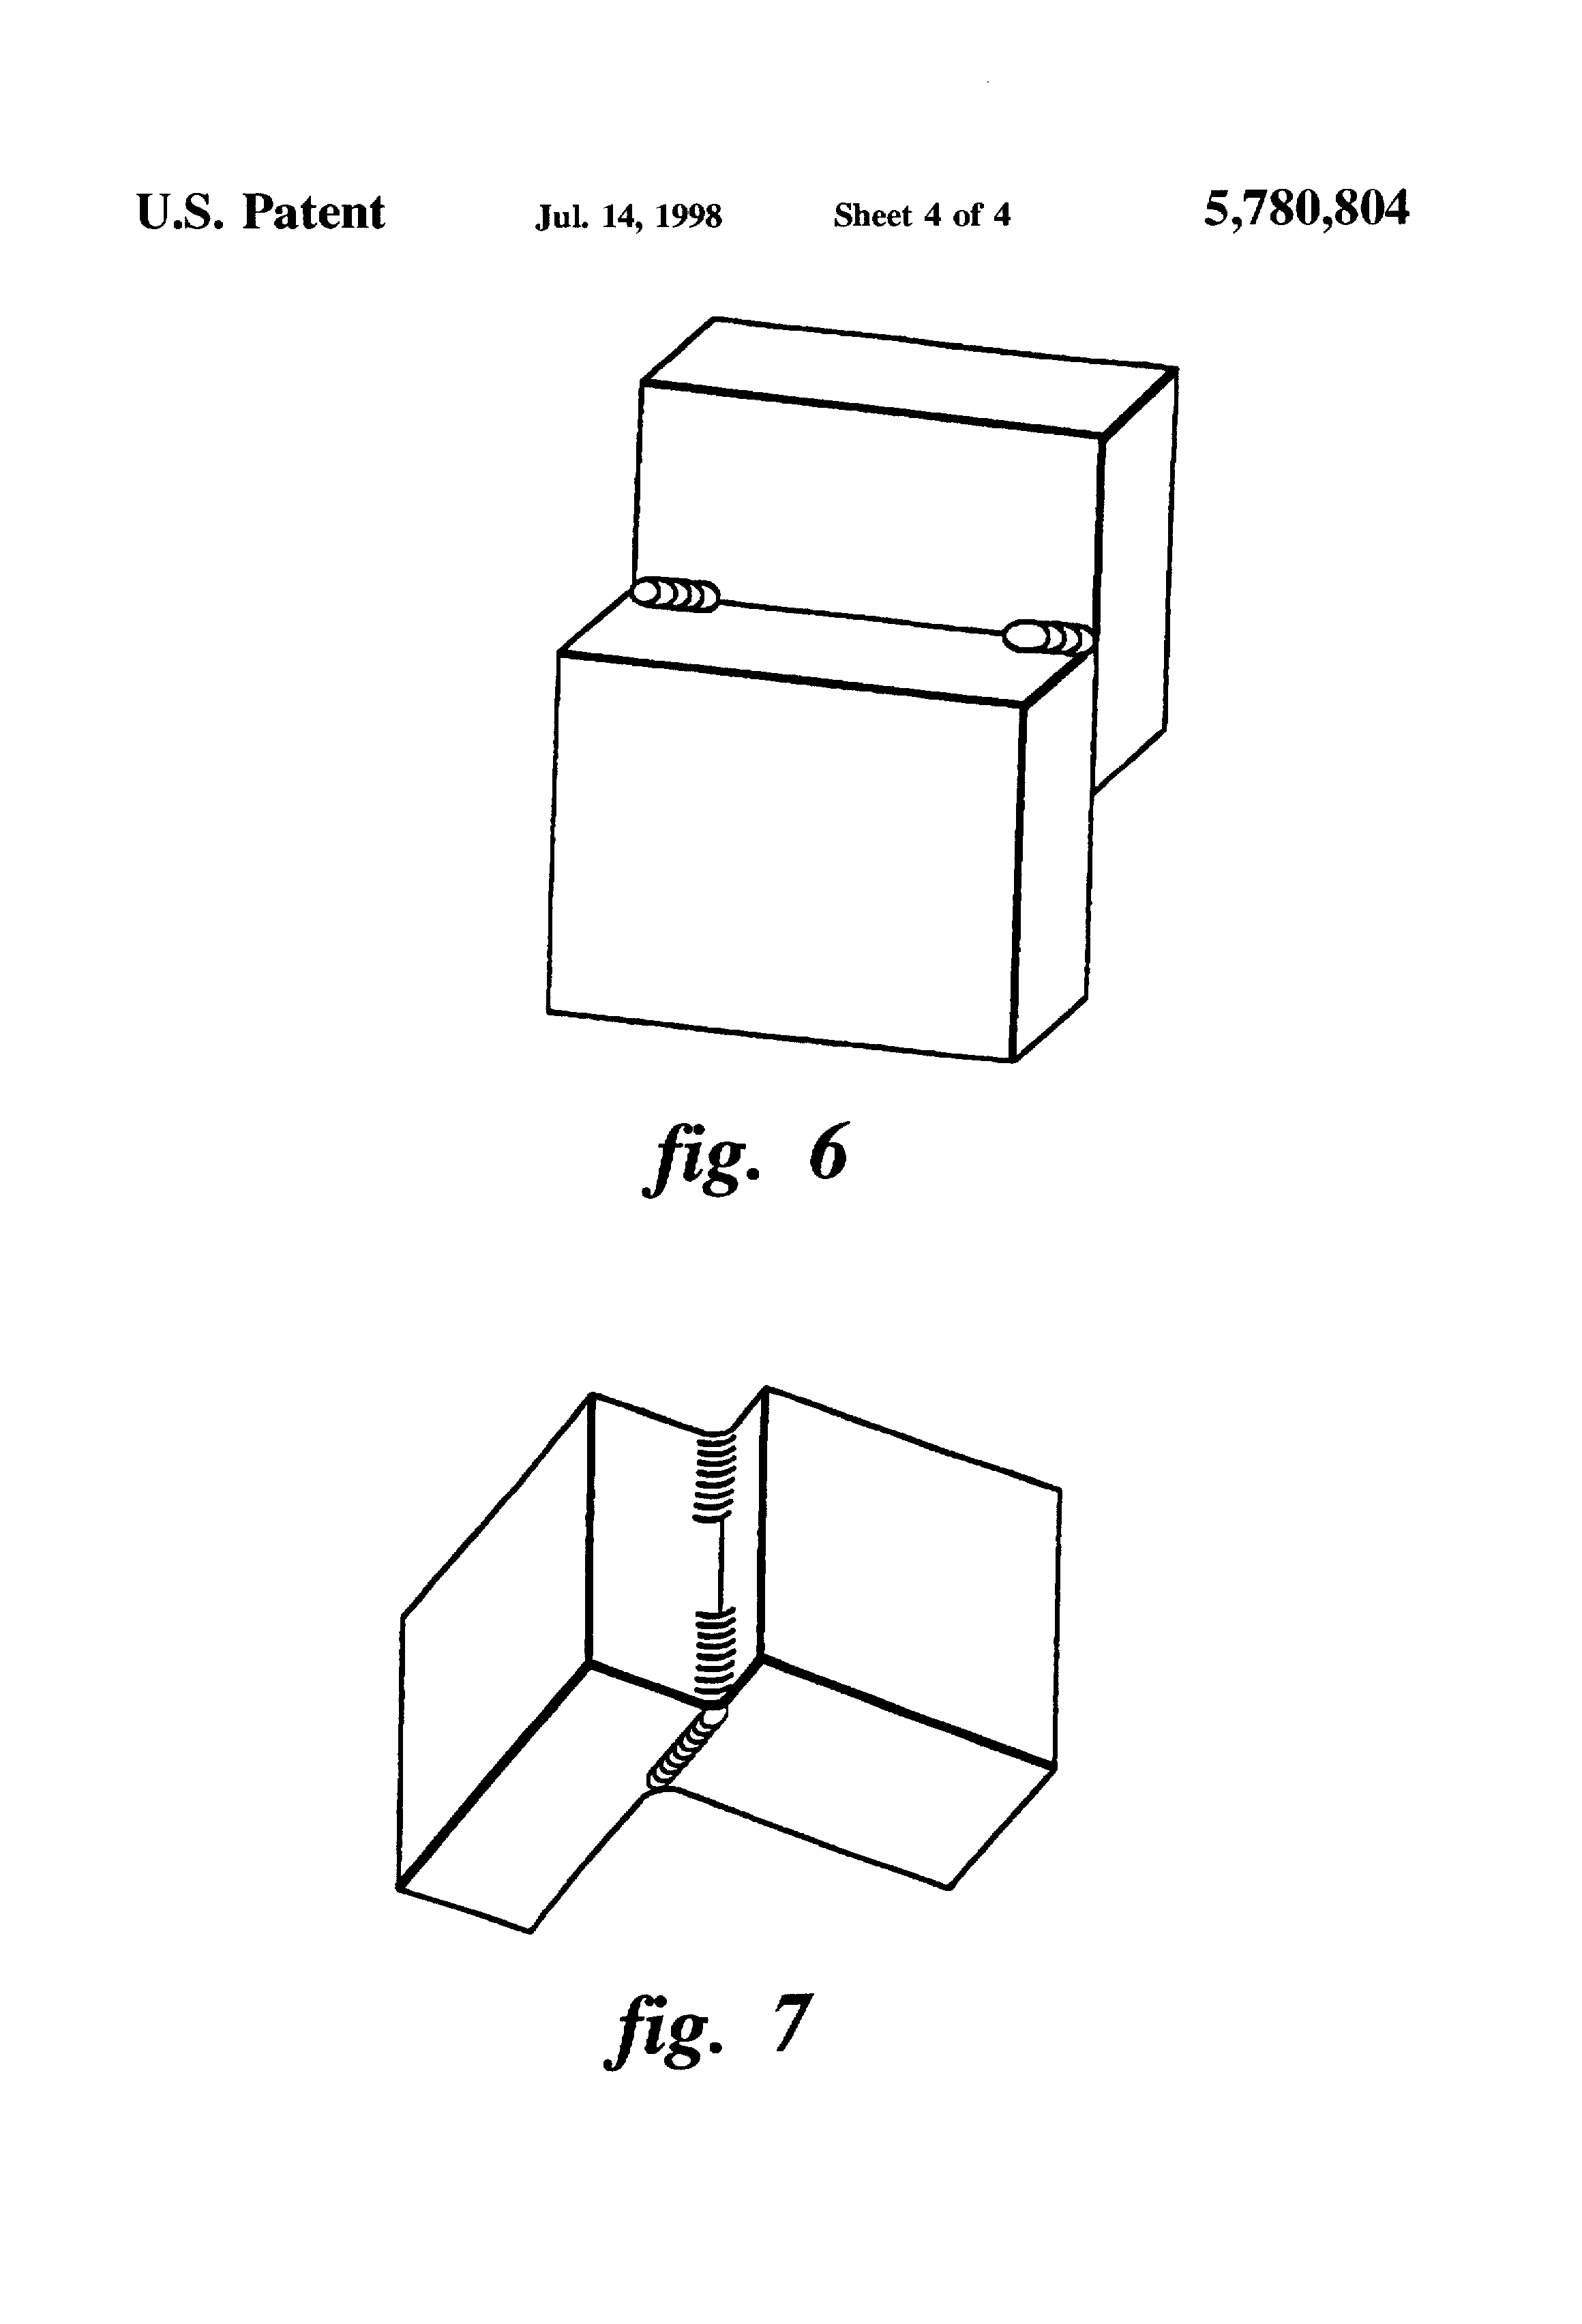 Brevet Us5780804 Apparatus And Method For Making Structural Fillet Hyperbaric Welding Diagram Patent Drawing